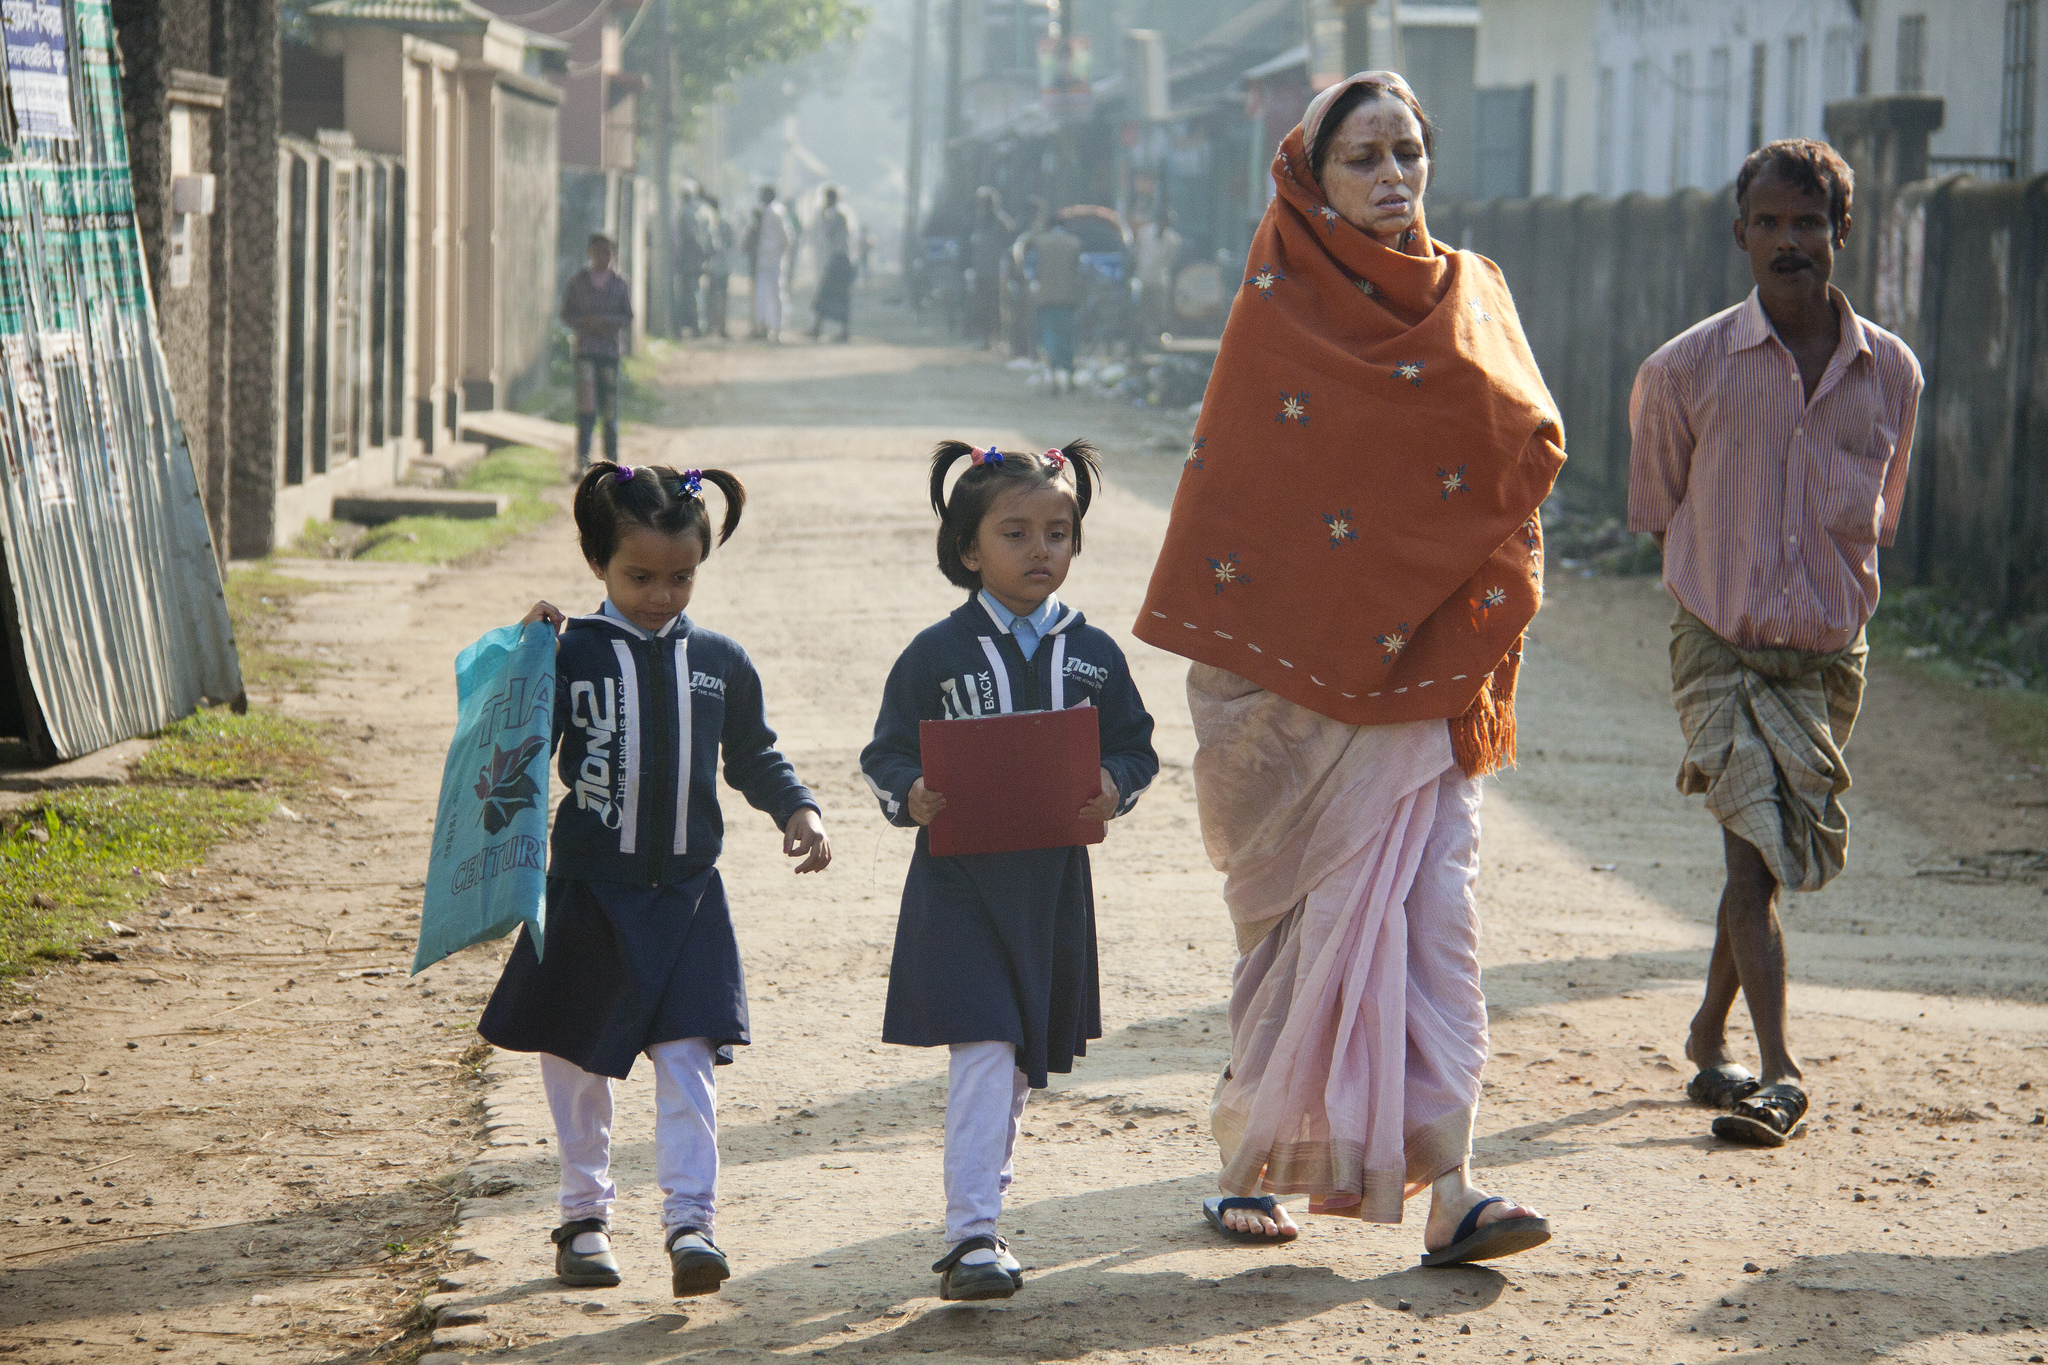 Children going to school with their mother